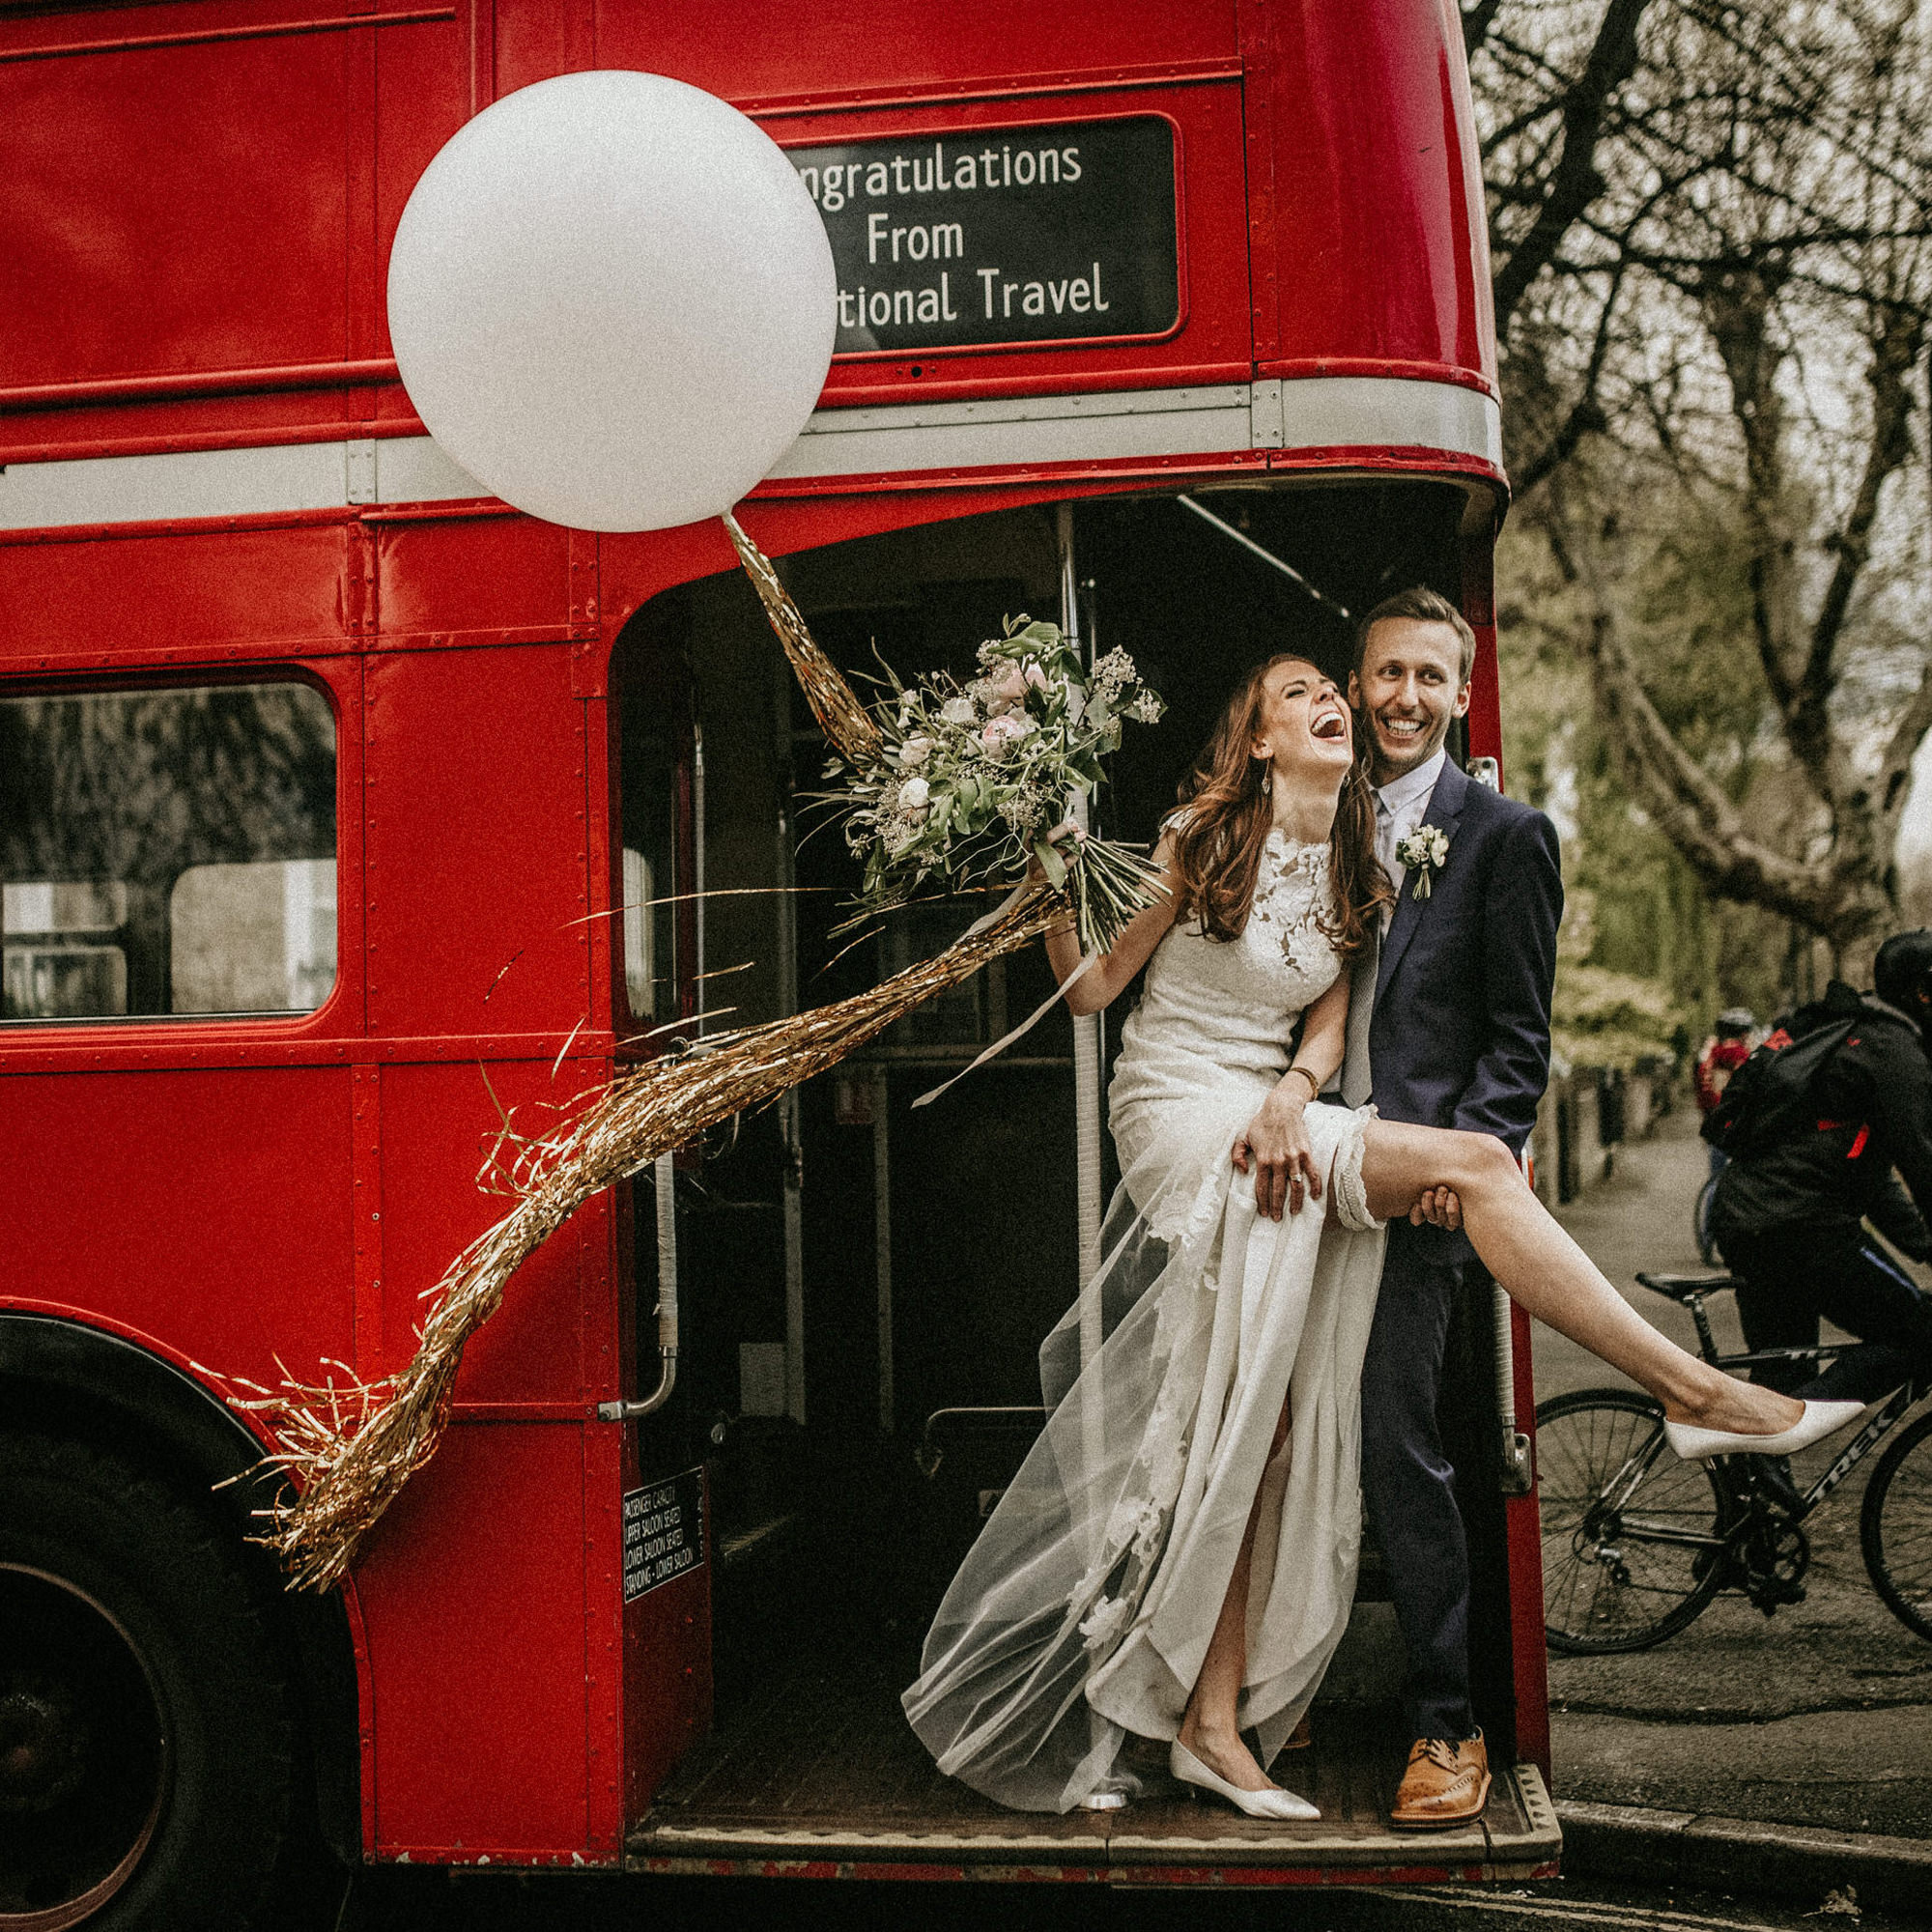 fun-couple-portrait-in-front-of-double-decker-red-bus-by-miki-studios